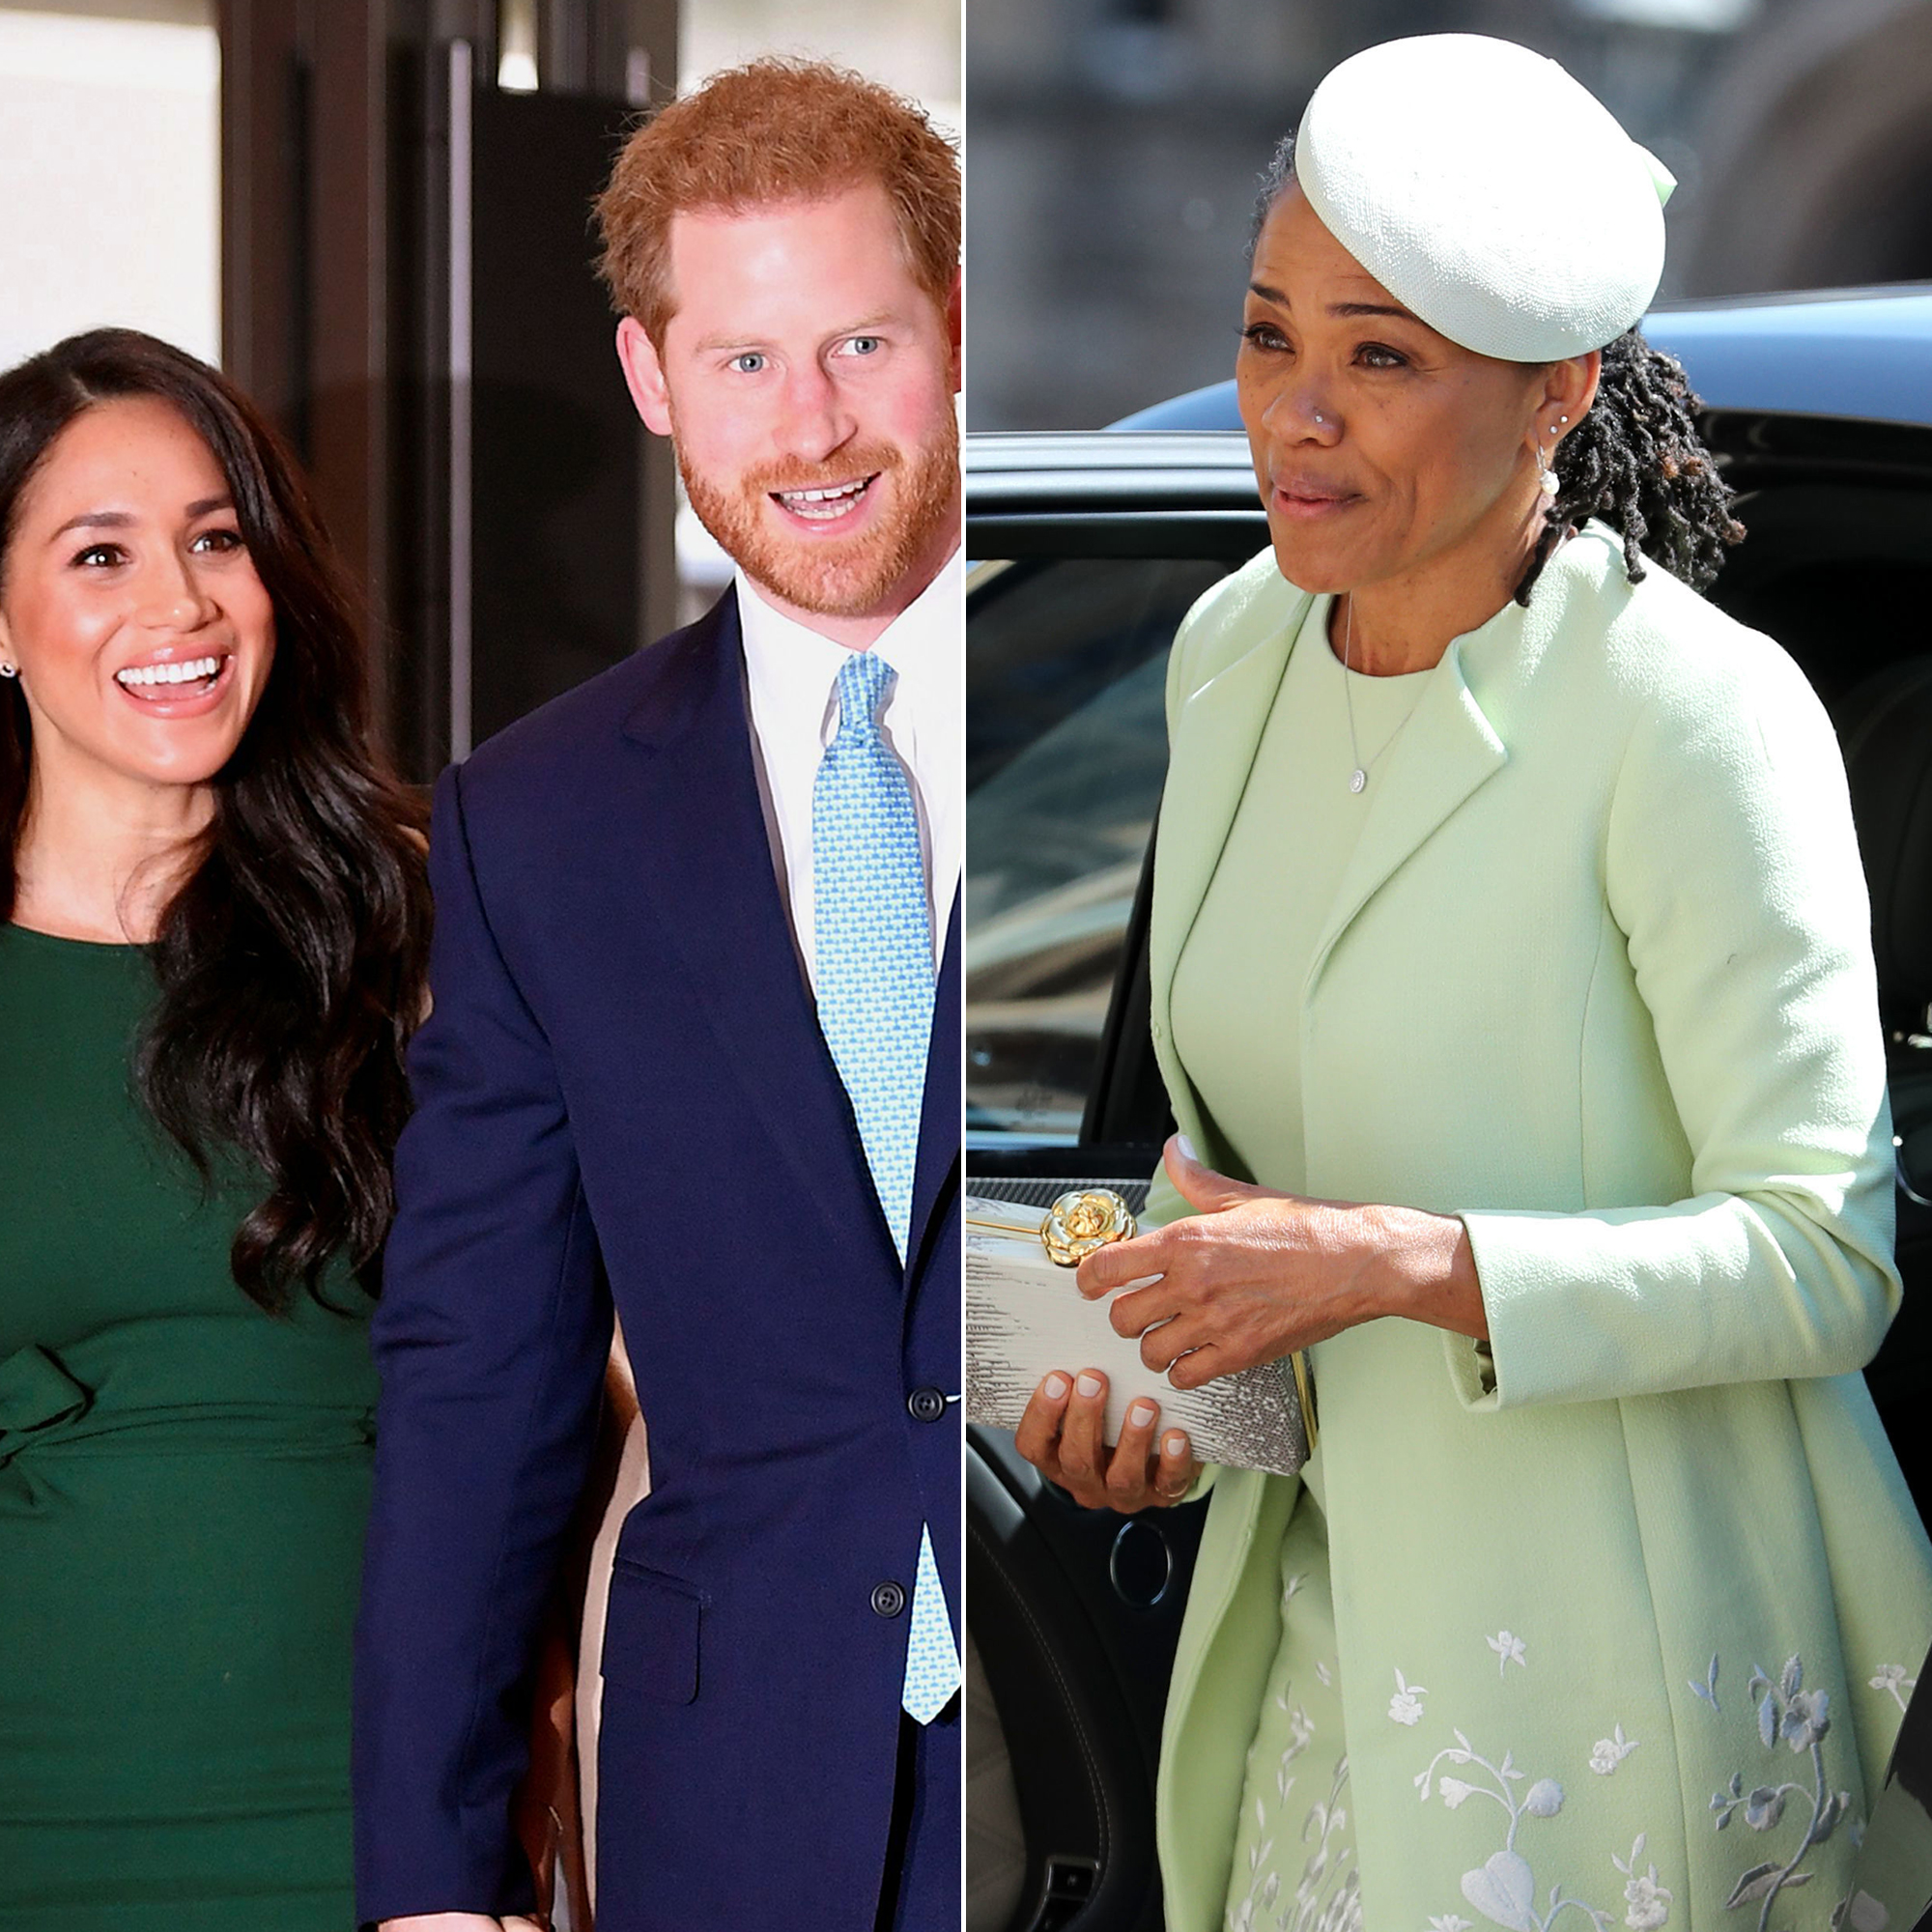 Harry And Meghan's Christmas Card Is Coming Soon